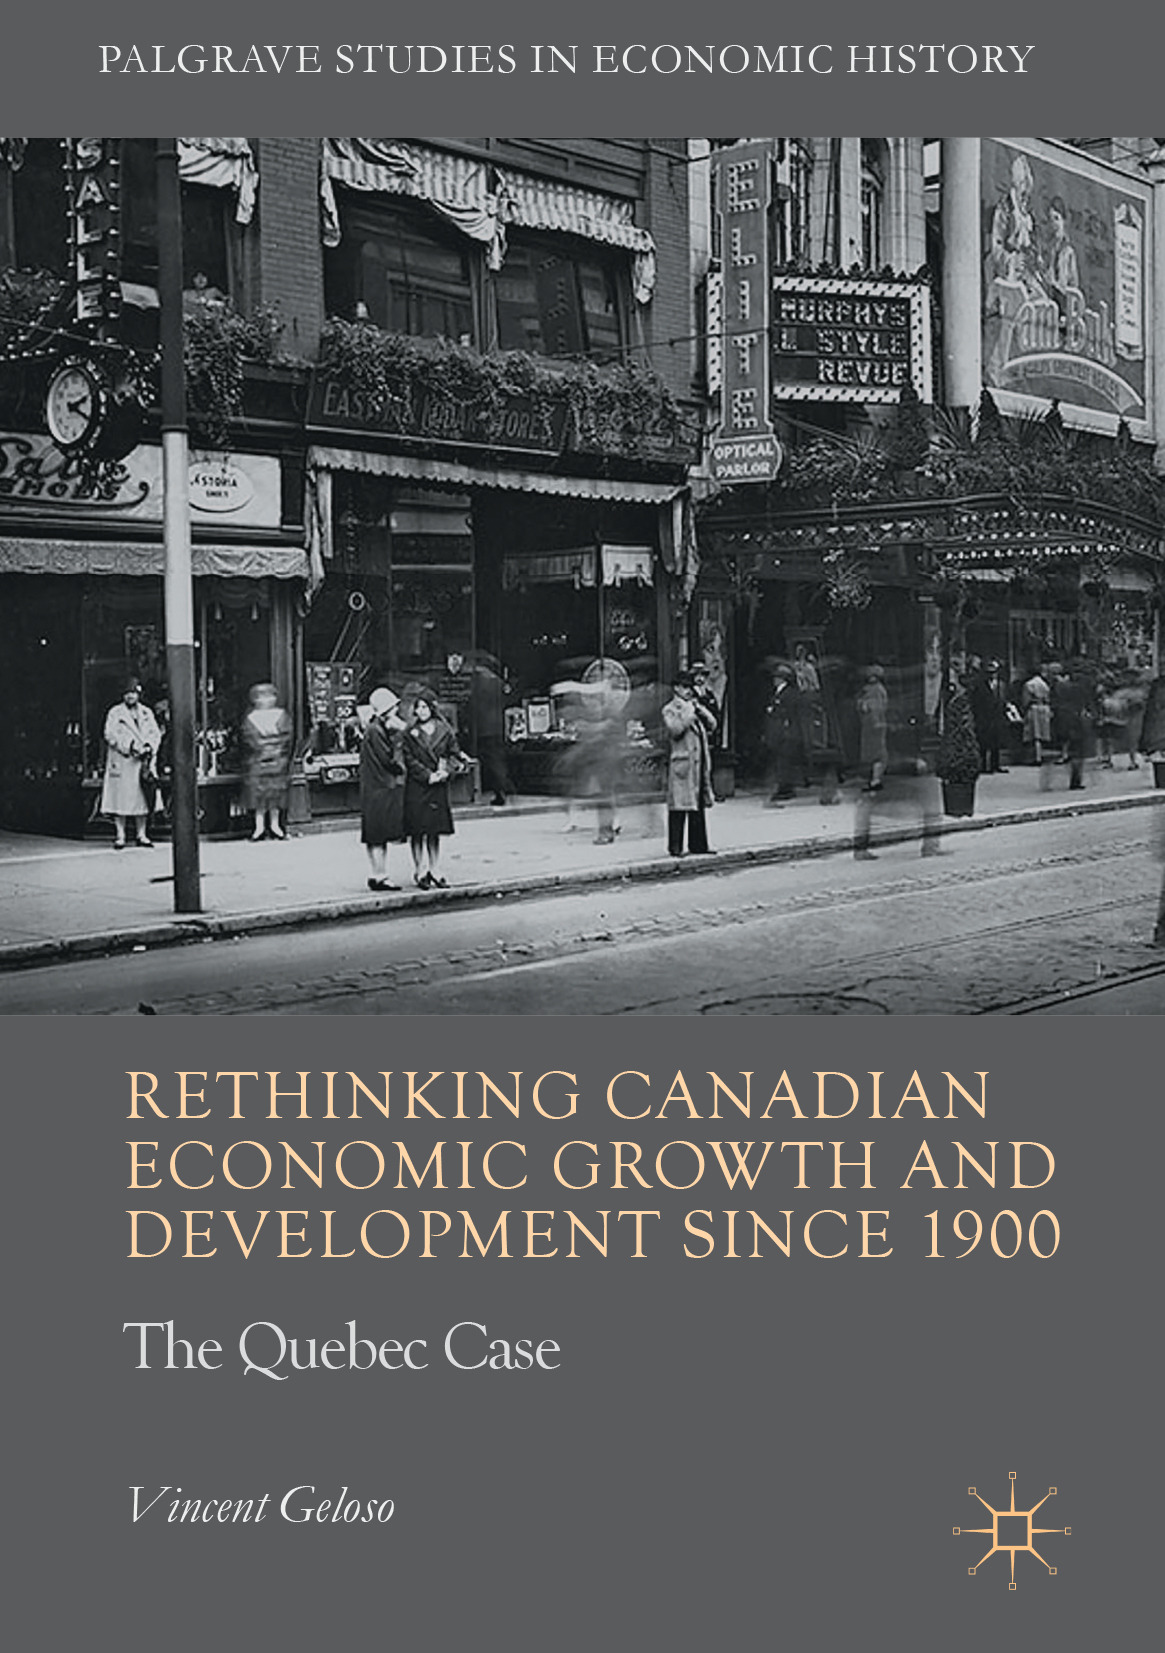 Geloso, Vincent - Rethinking Canadian Economic Growth and Development since 1900, ebook